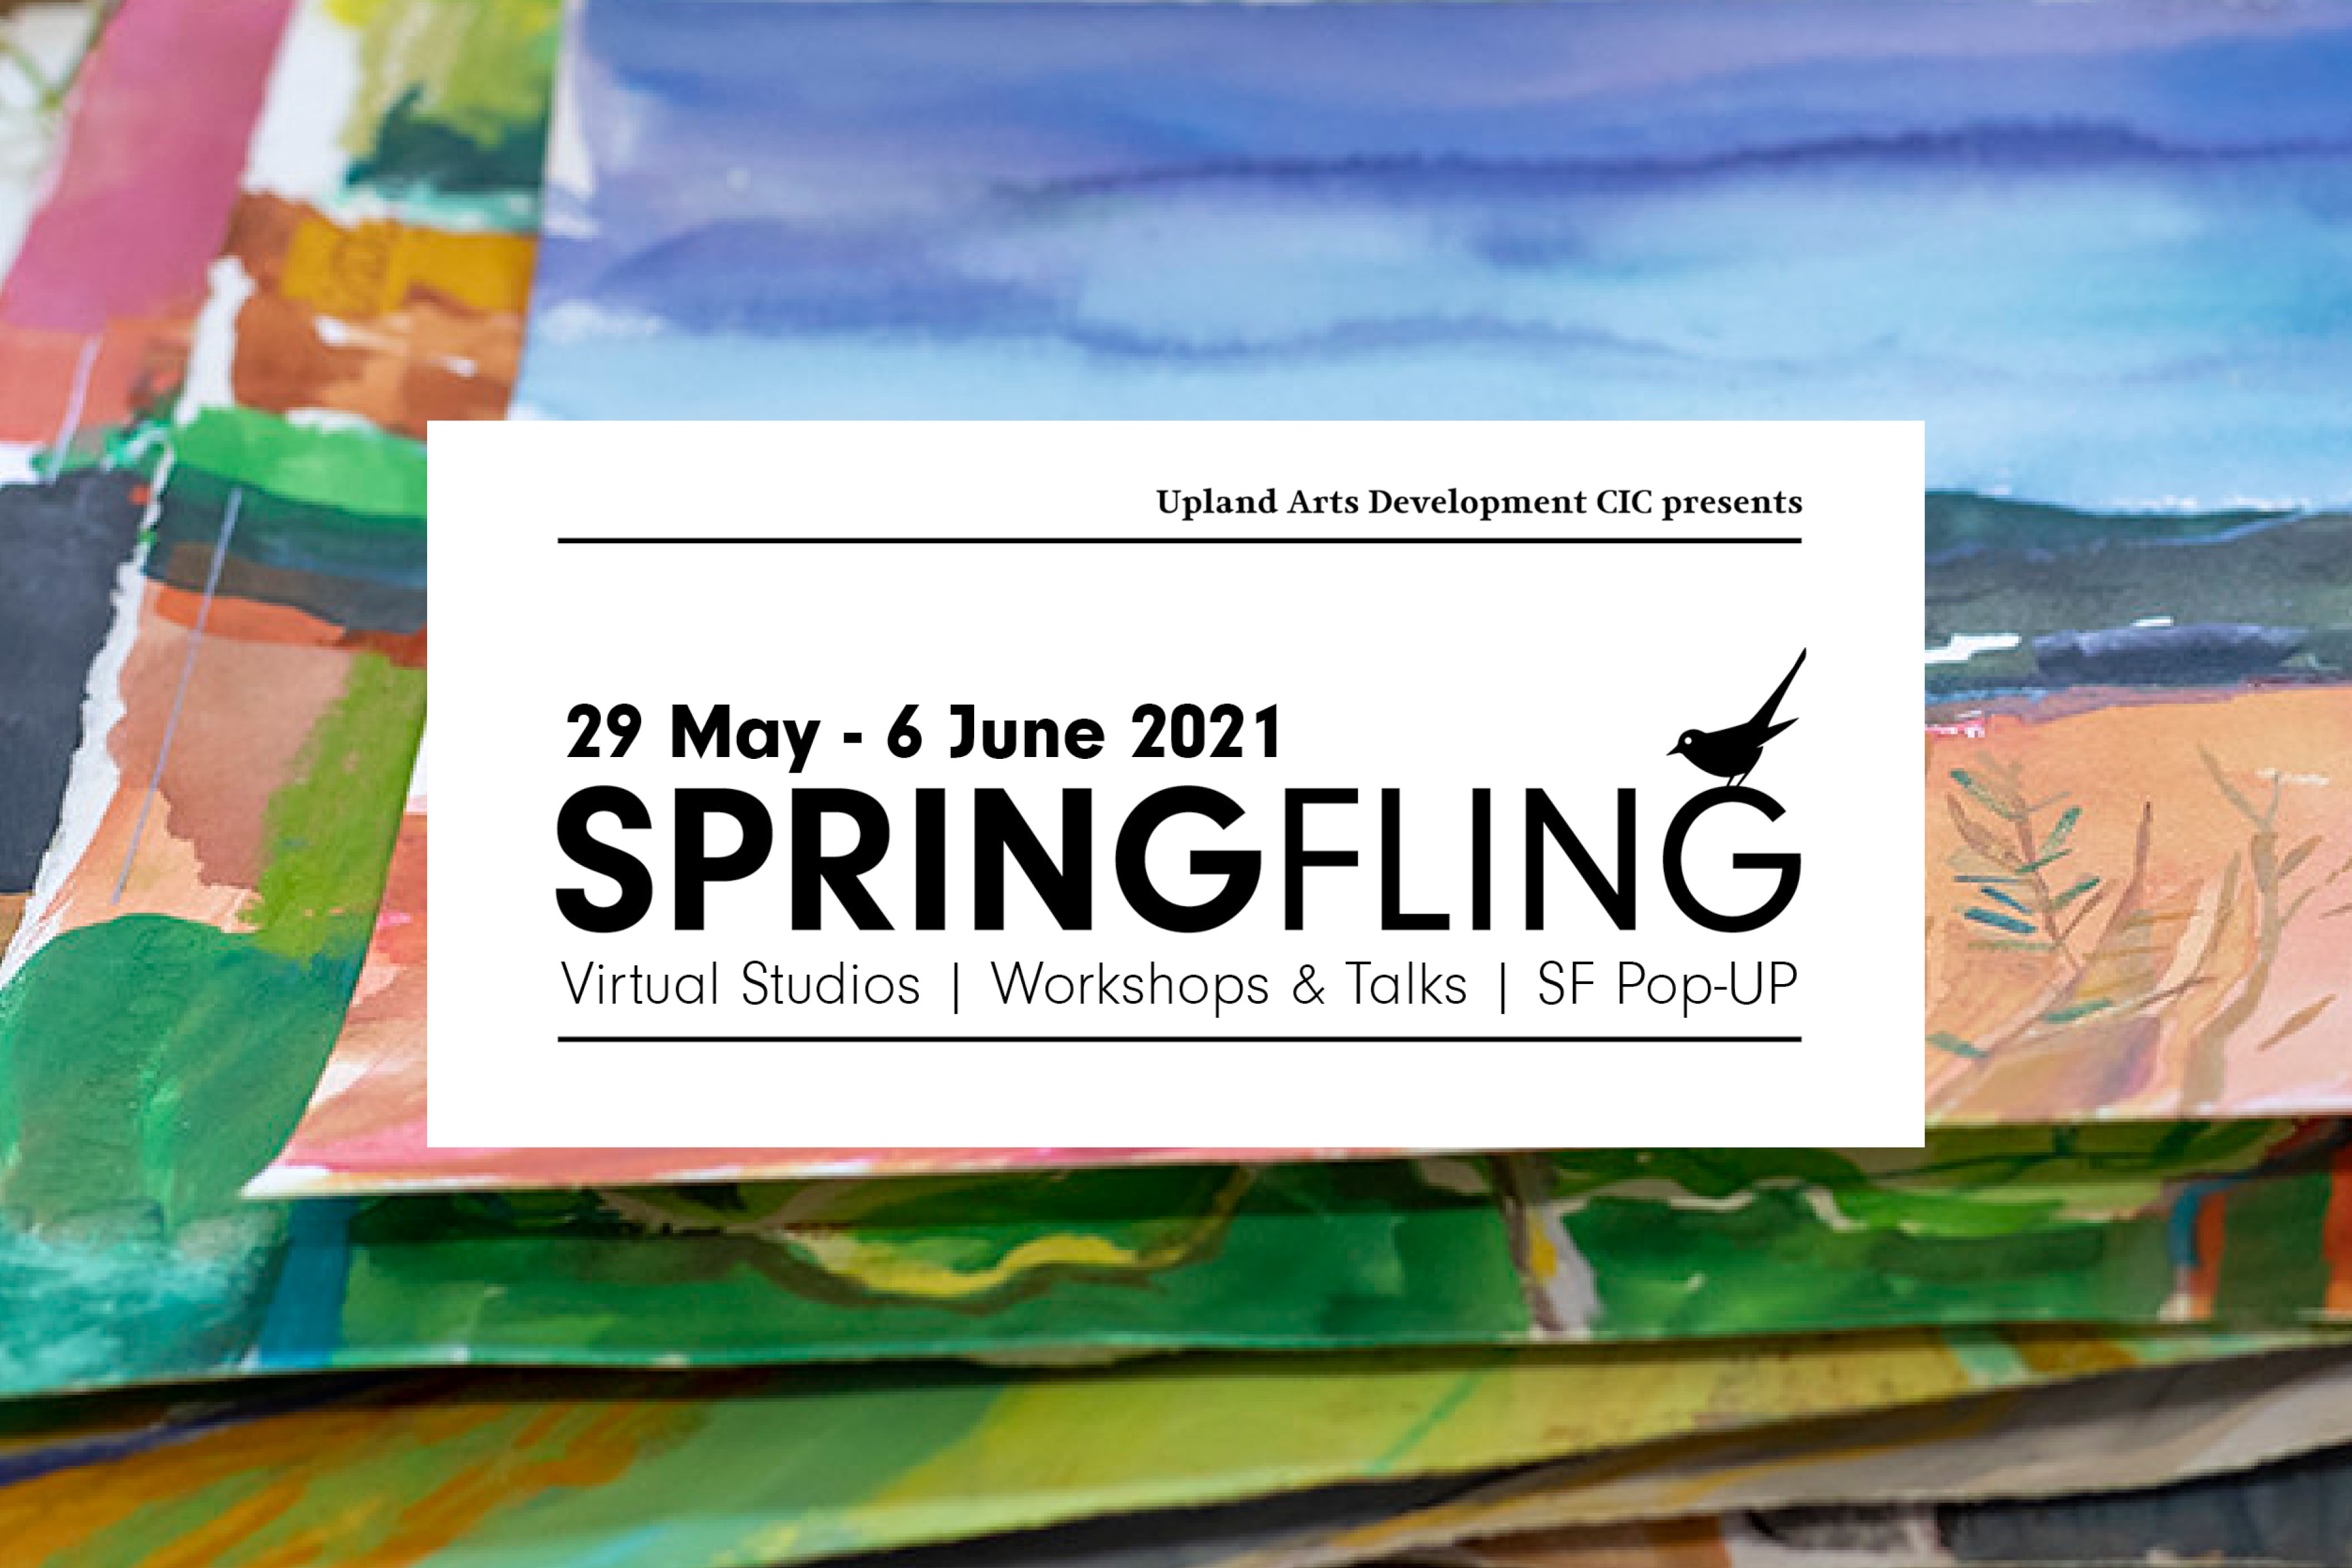 Spring Fling 2021: Applications Open for New Graduates Scheme Image #0